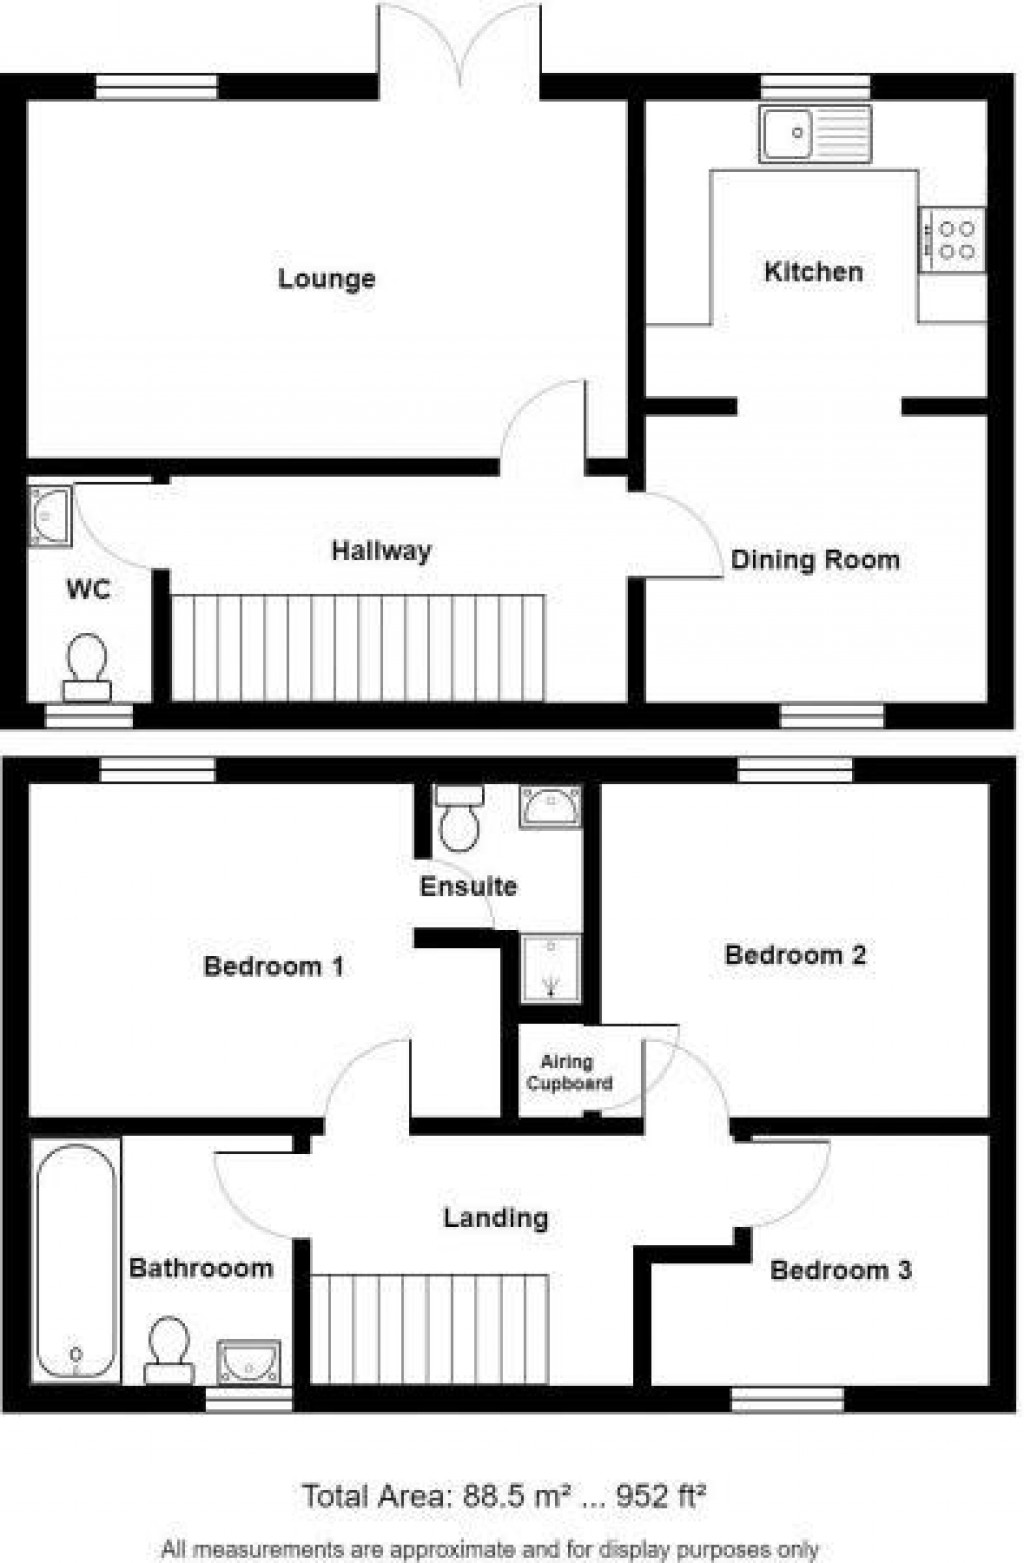 Floorplan for Hestercombe Close, Weston Village - DETACHED HOUSE + SUNNY GARDEN